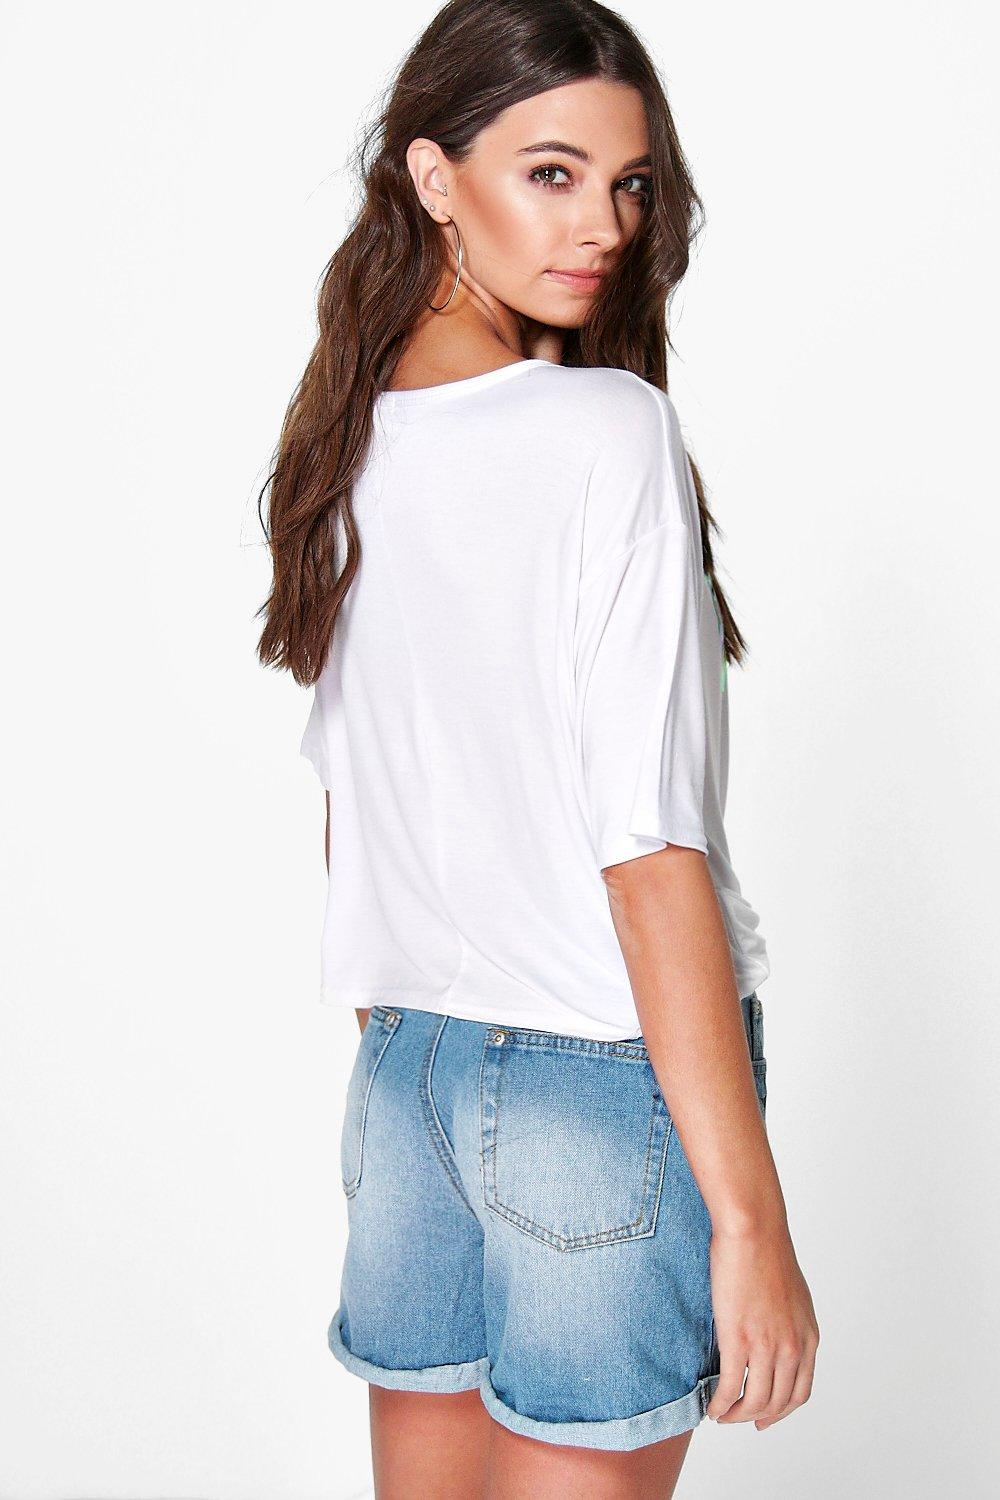 Rosie West Coast Metallic Print Tee